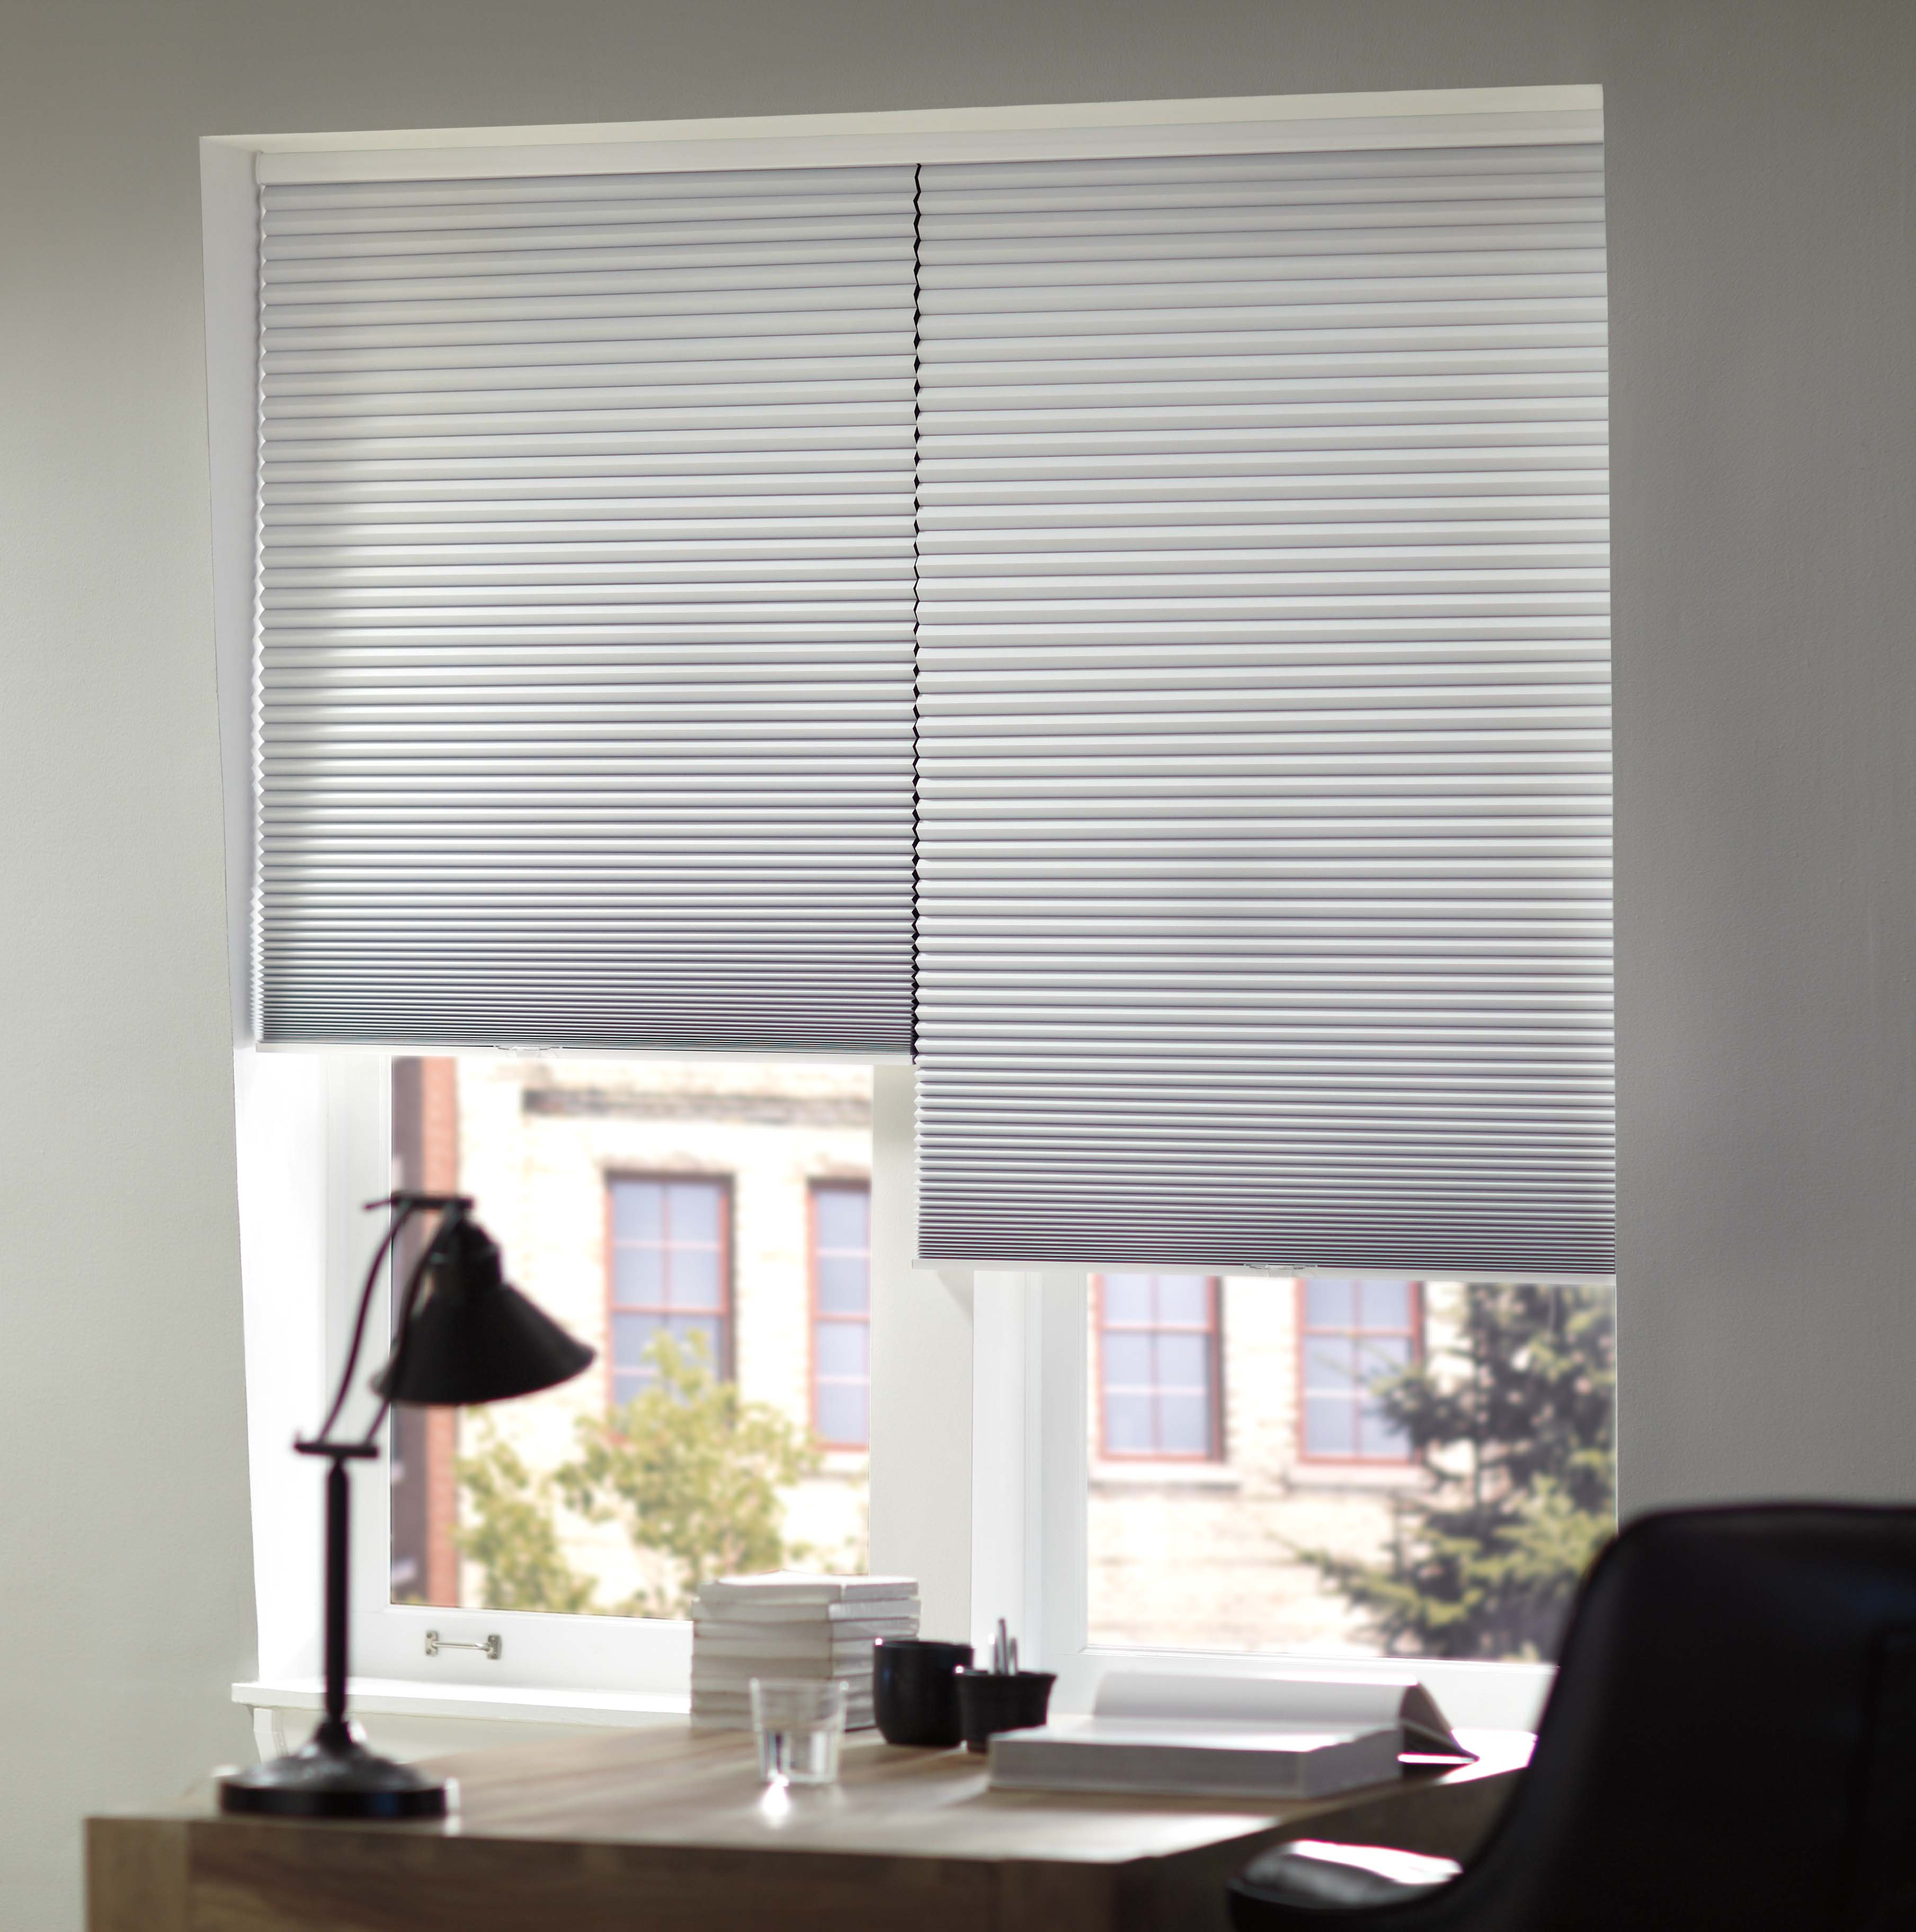 Window Blinds Home Depot With Window Blinds Home Depot Awesome